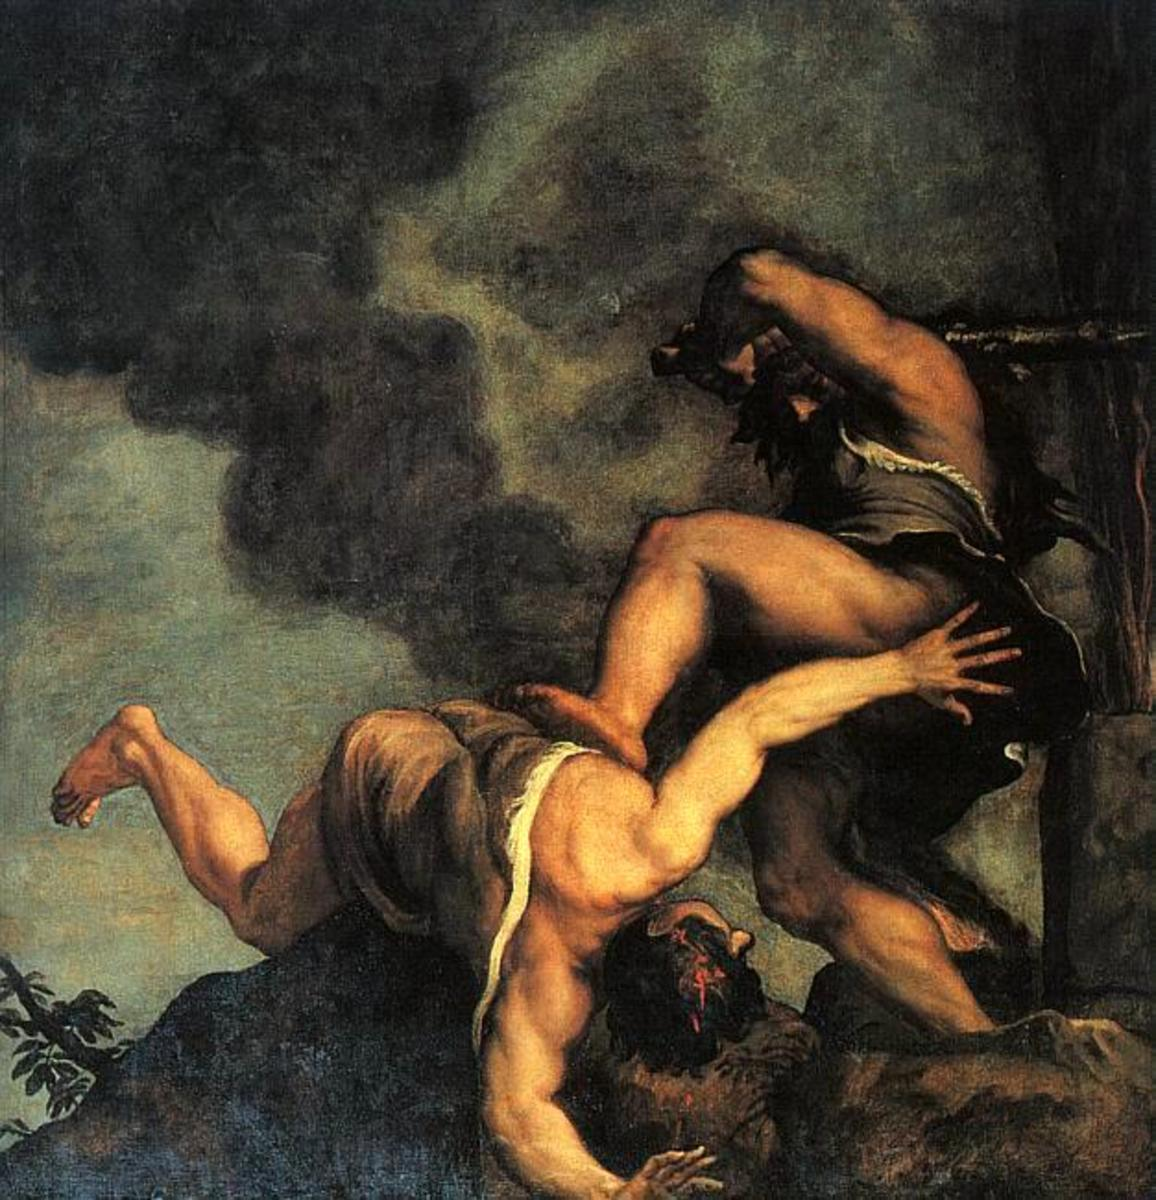 Cain and Abel Titian 1487/90-1576